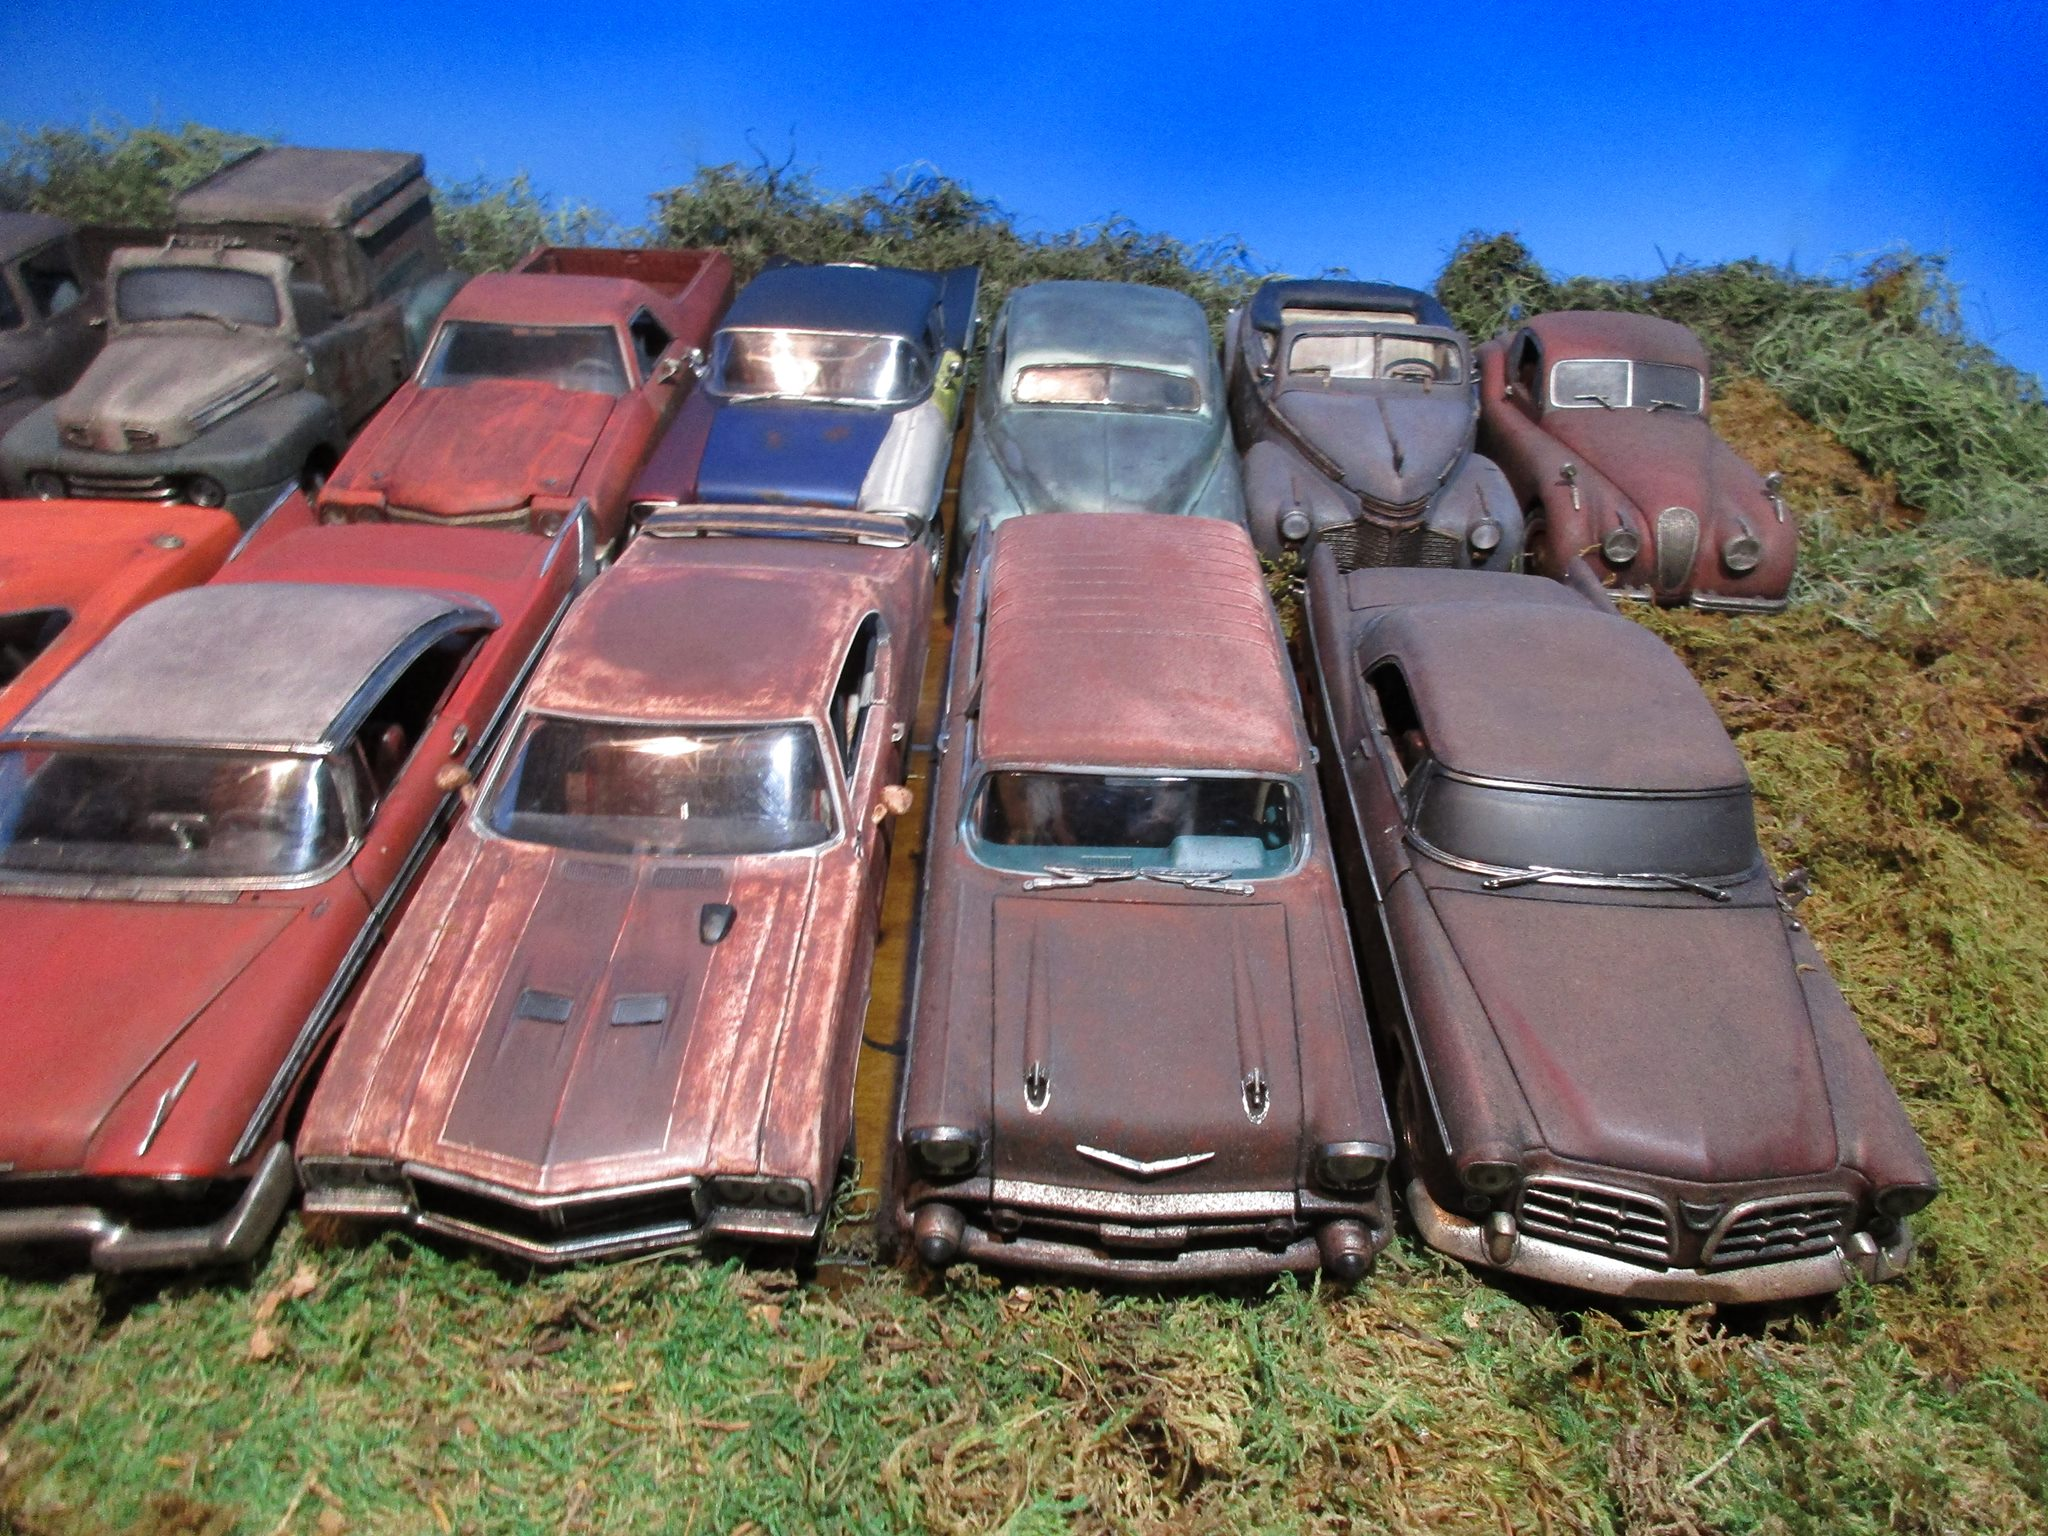 Toasted-Autos-Weathered-Die-Cast-Cars-8